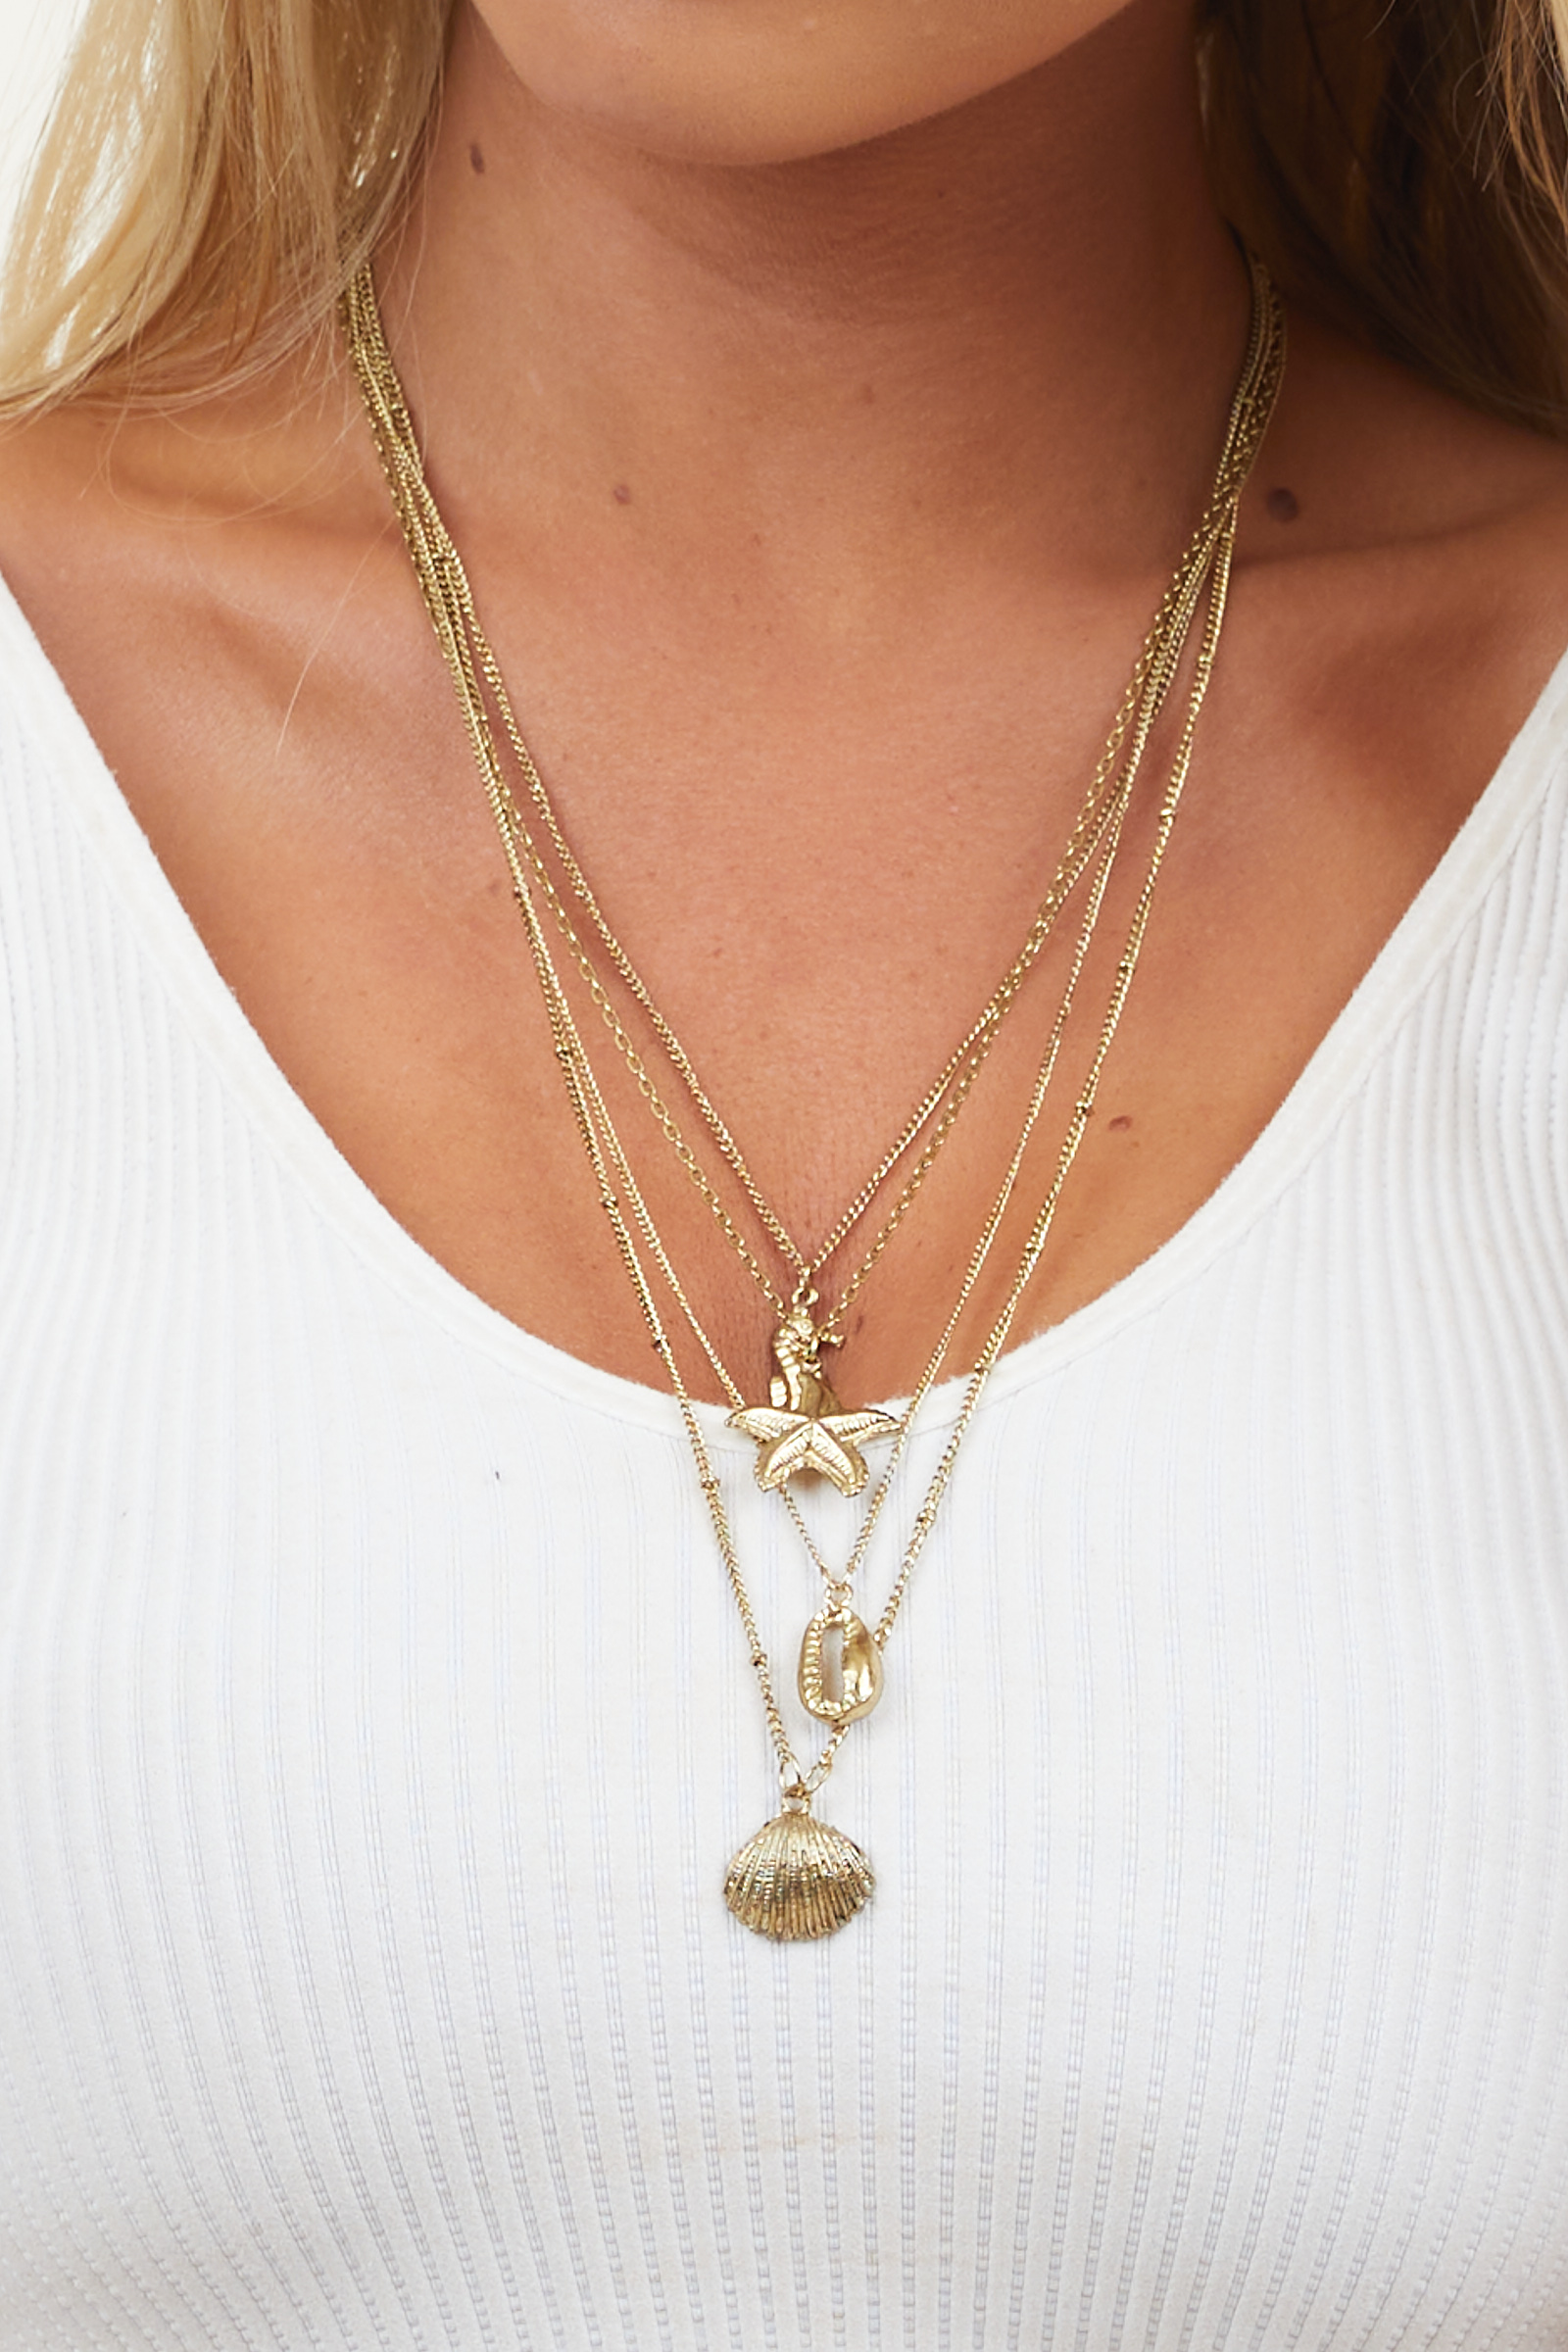 Antique Gold Layered Necklace with Nautical Pendants